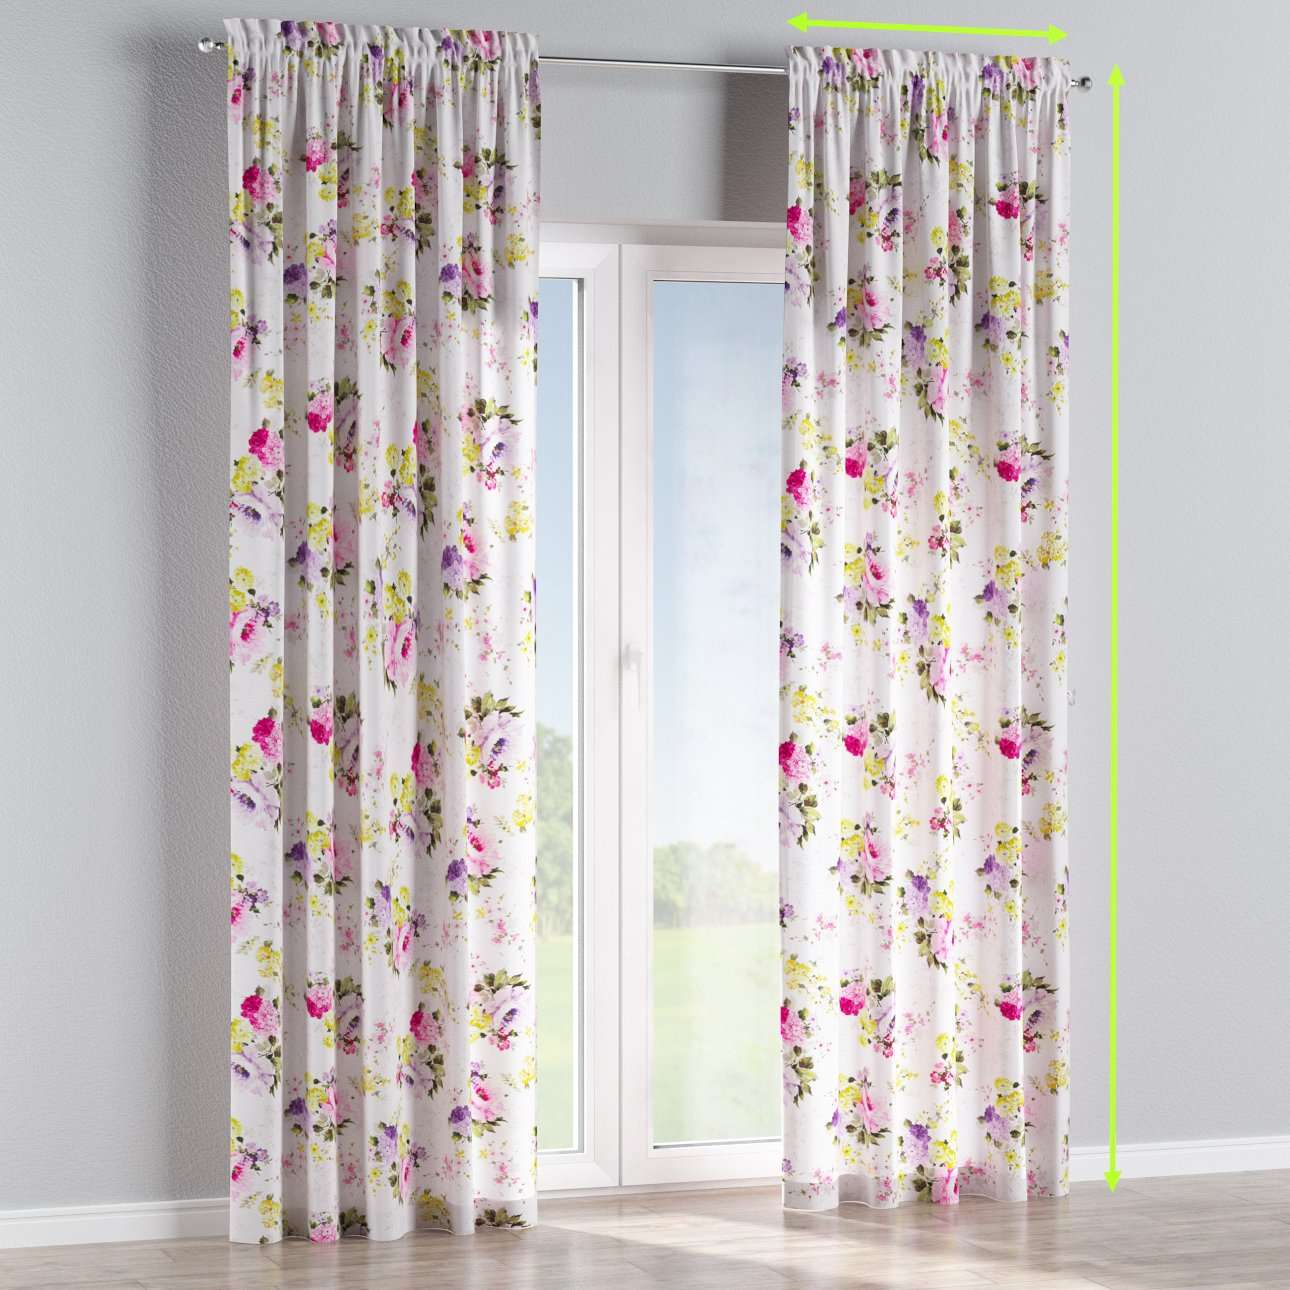 Slot and frill lined curtains in collection Monet, fabric: 140-00